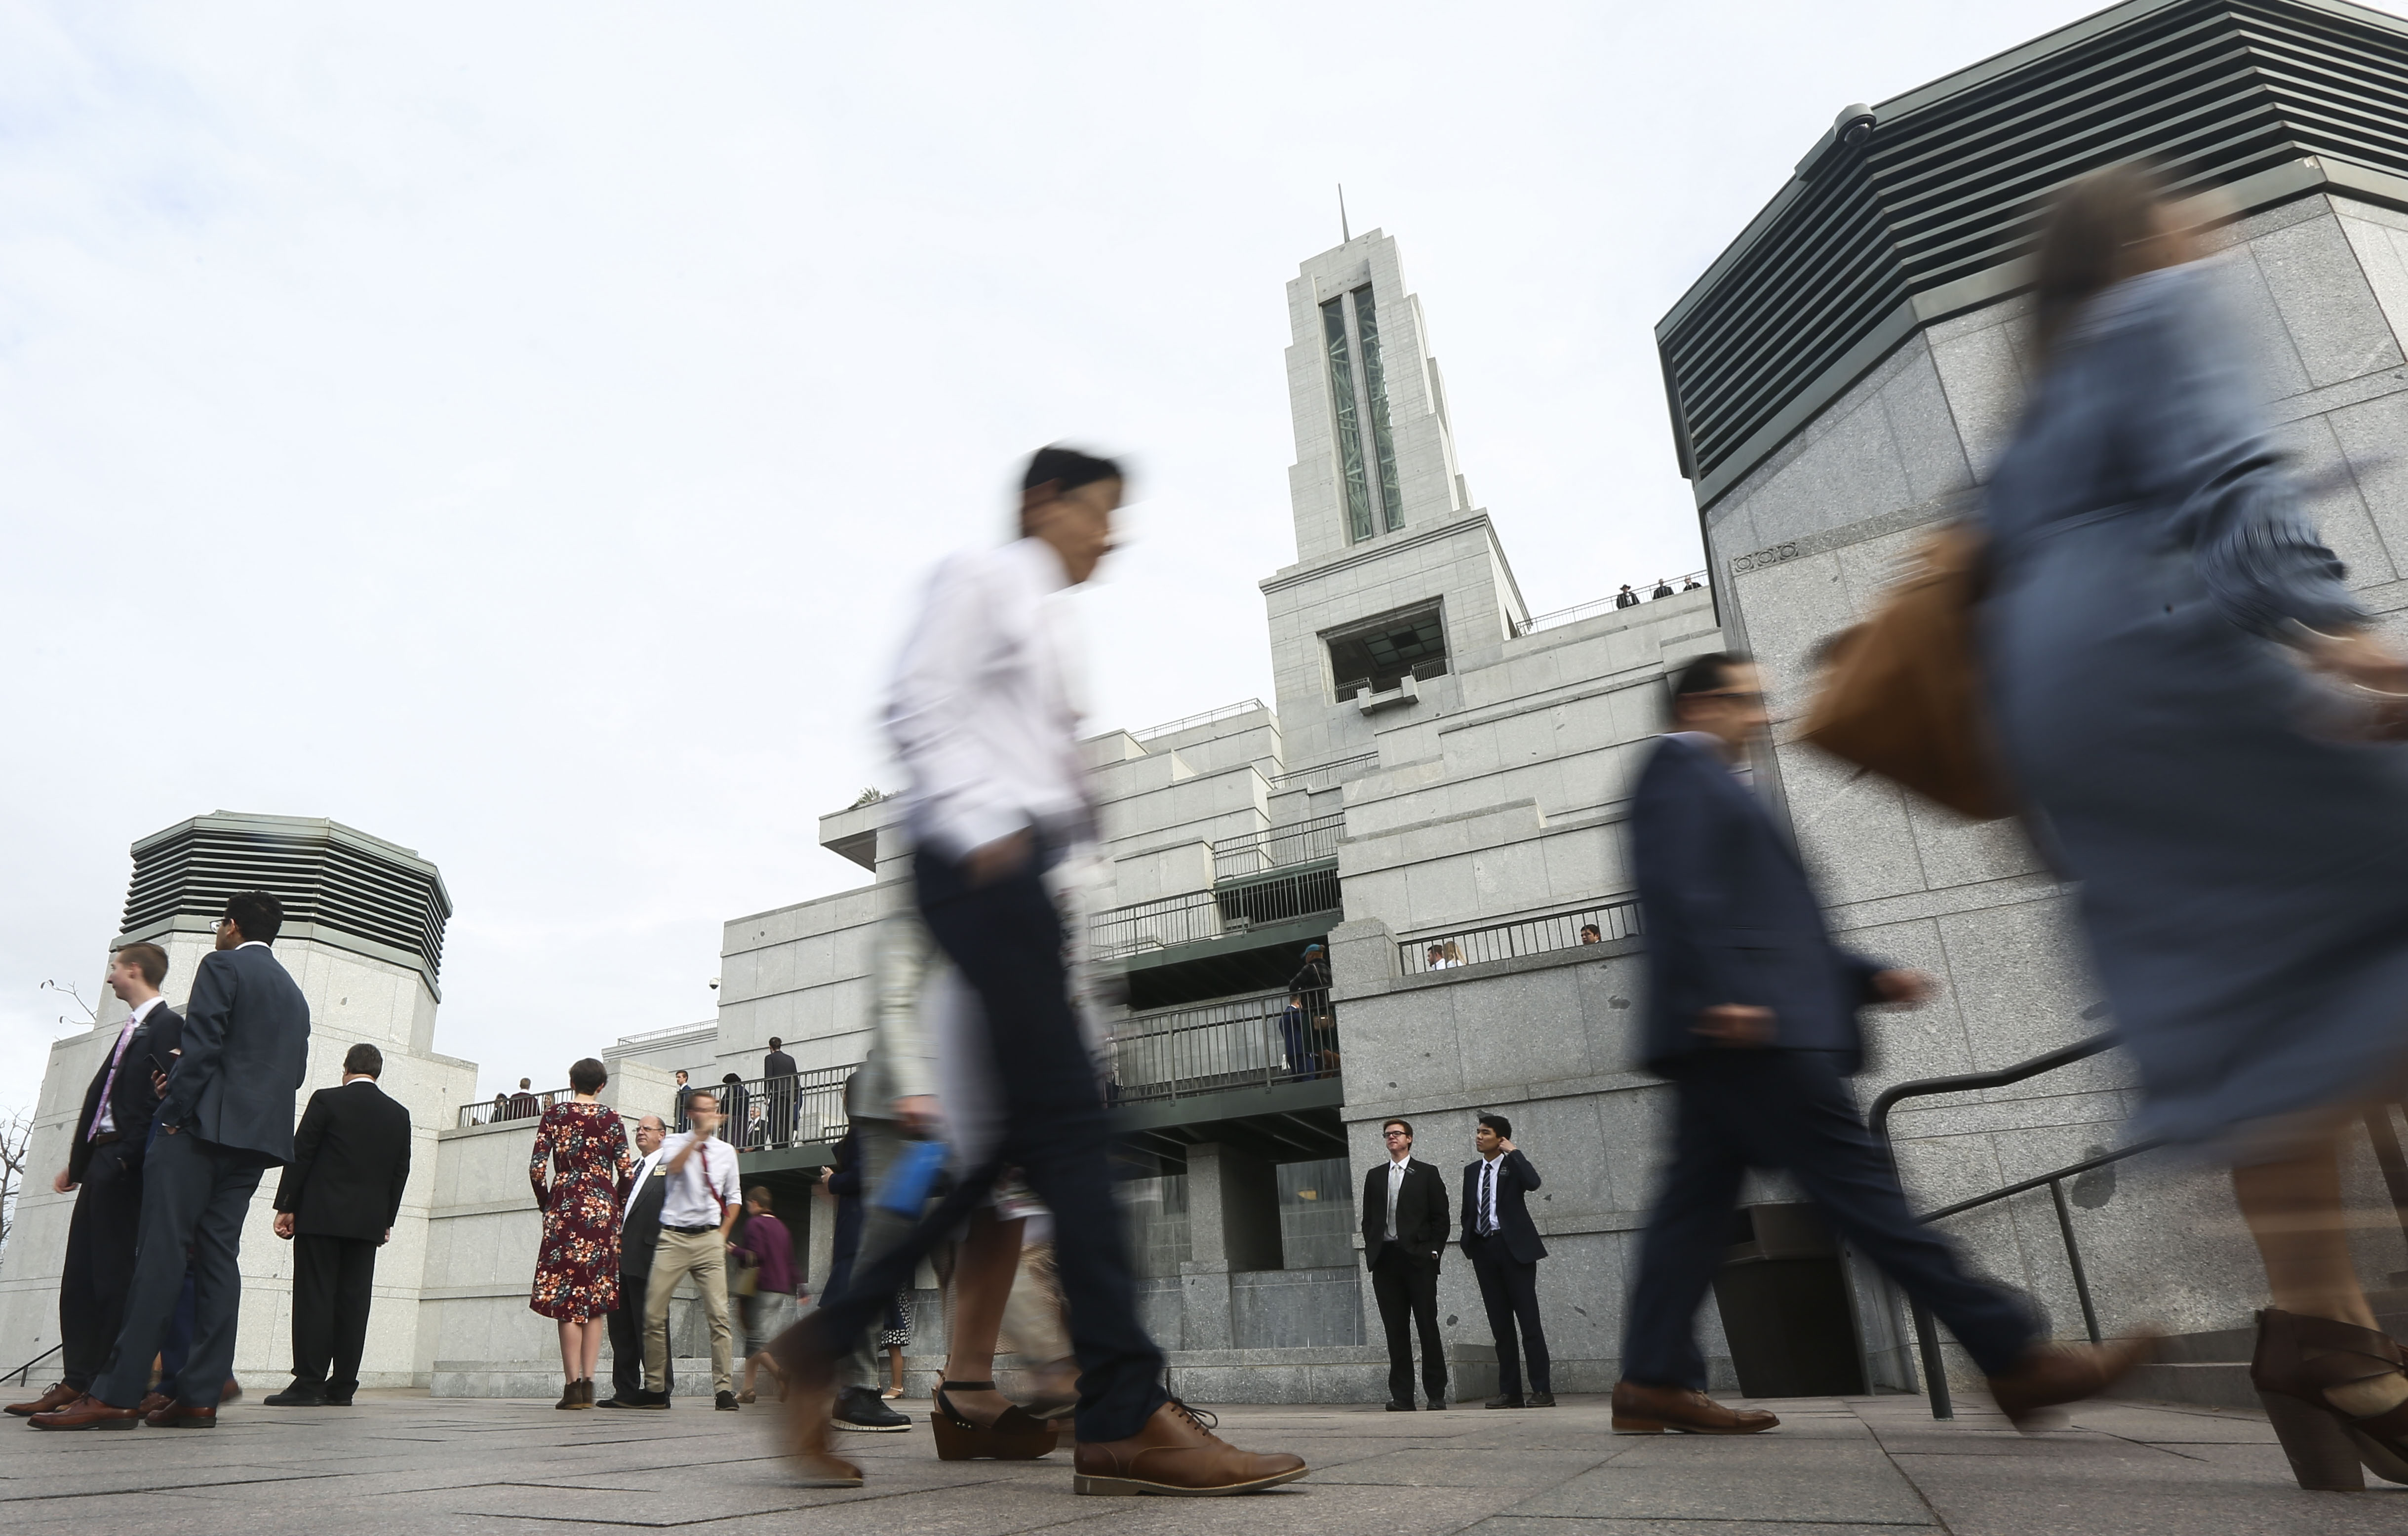 Conferencegoers arrive at the Conference Center for the Sunday morning session of the 189th Annual General Conference of The Church of Jesus Christ of Latter-day Saints in Salt Lake City on Sunday, April 7, 2019.